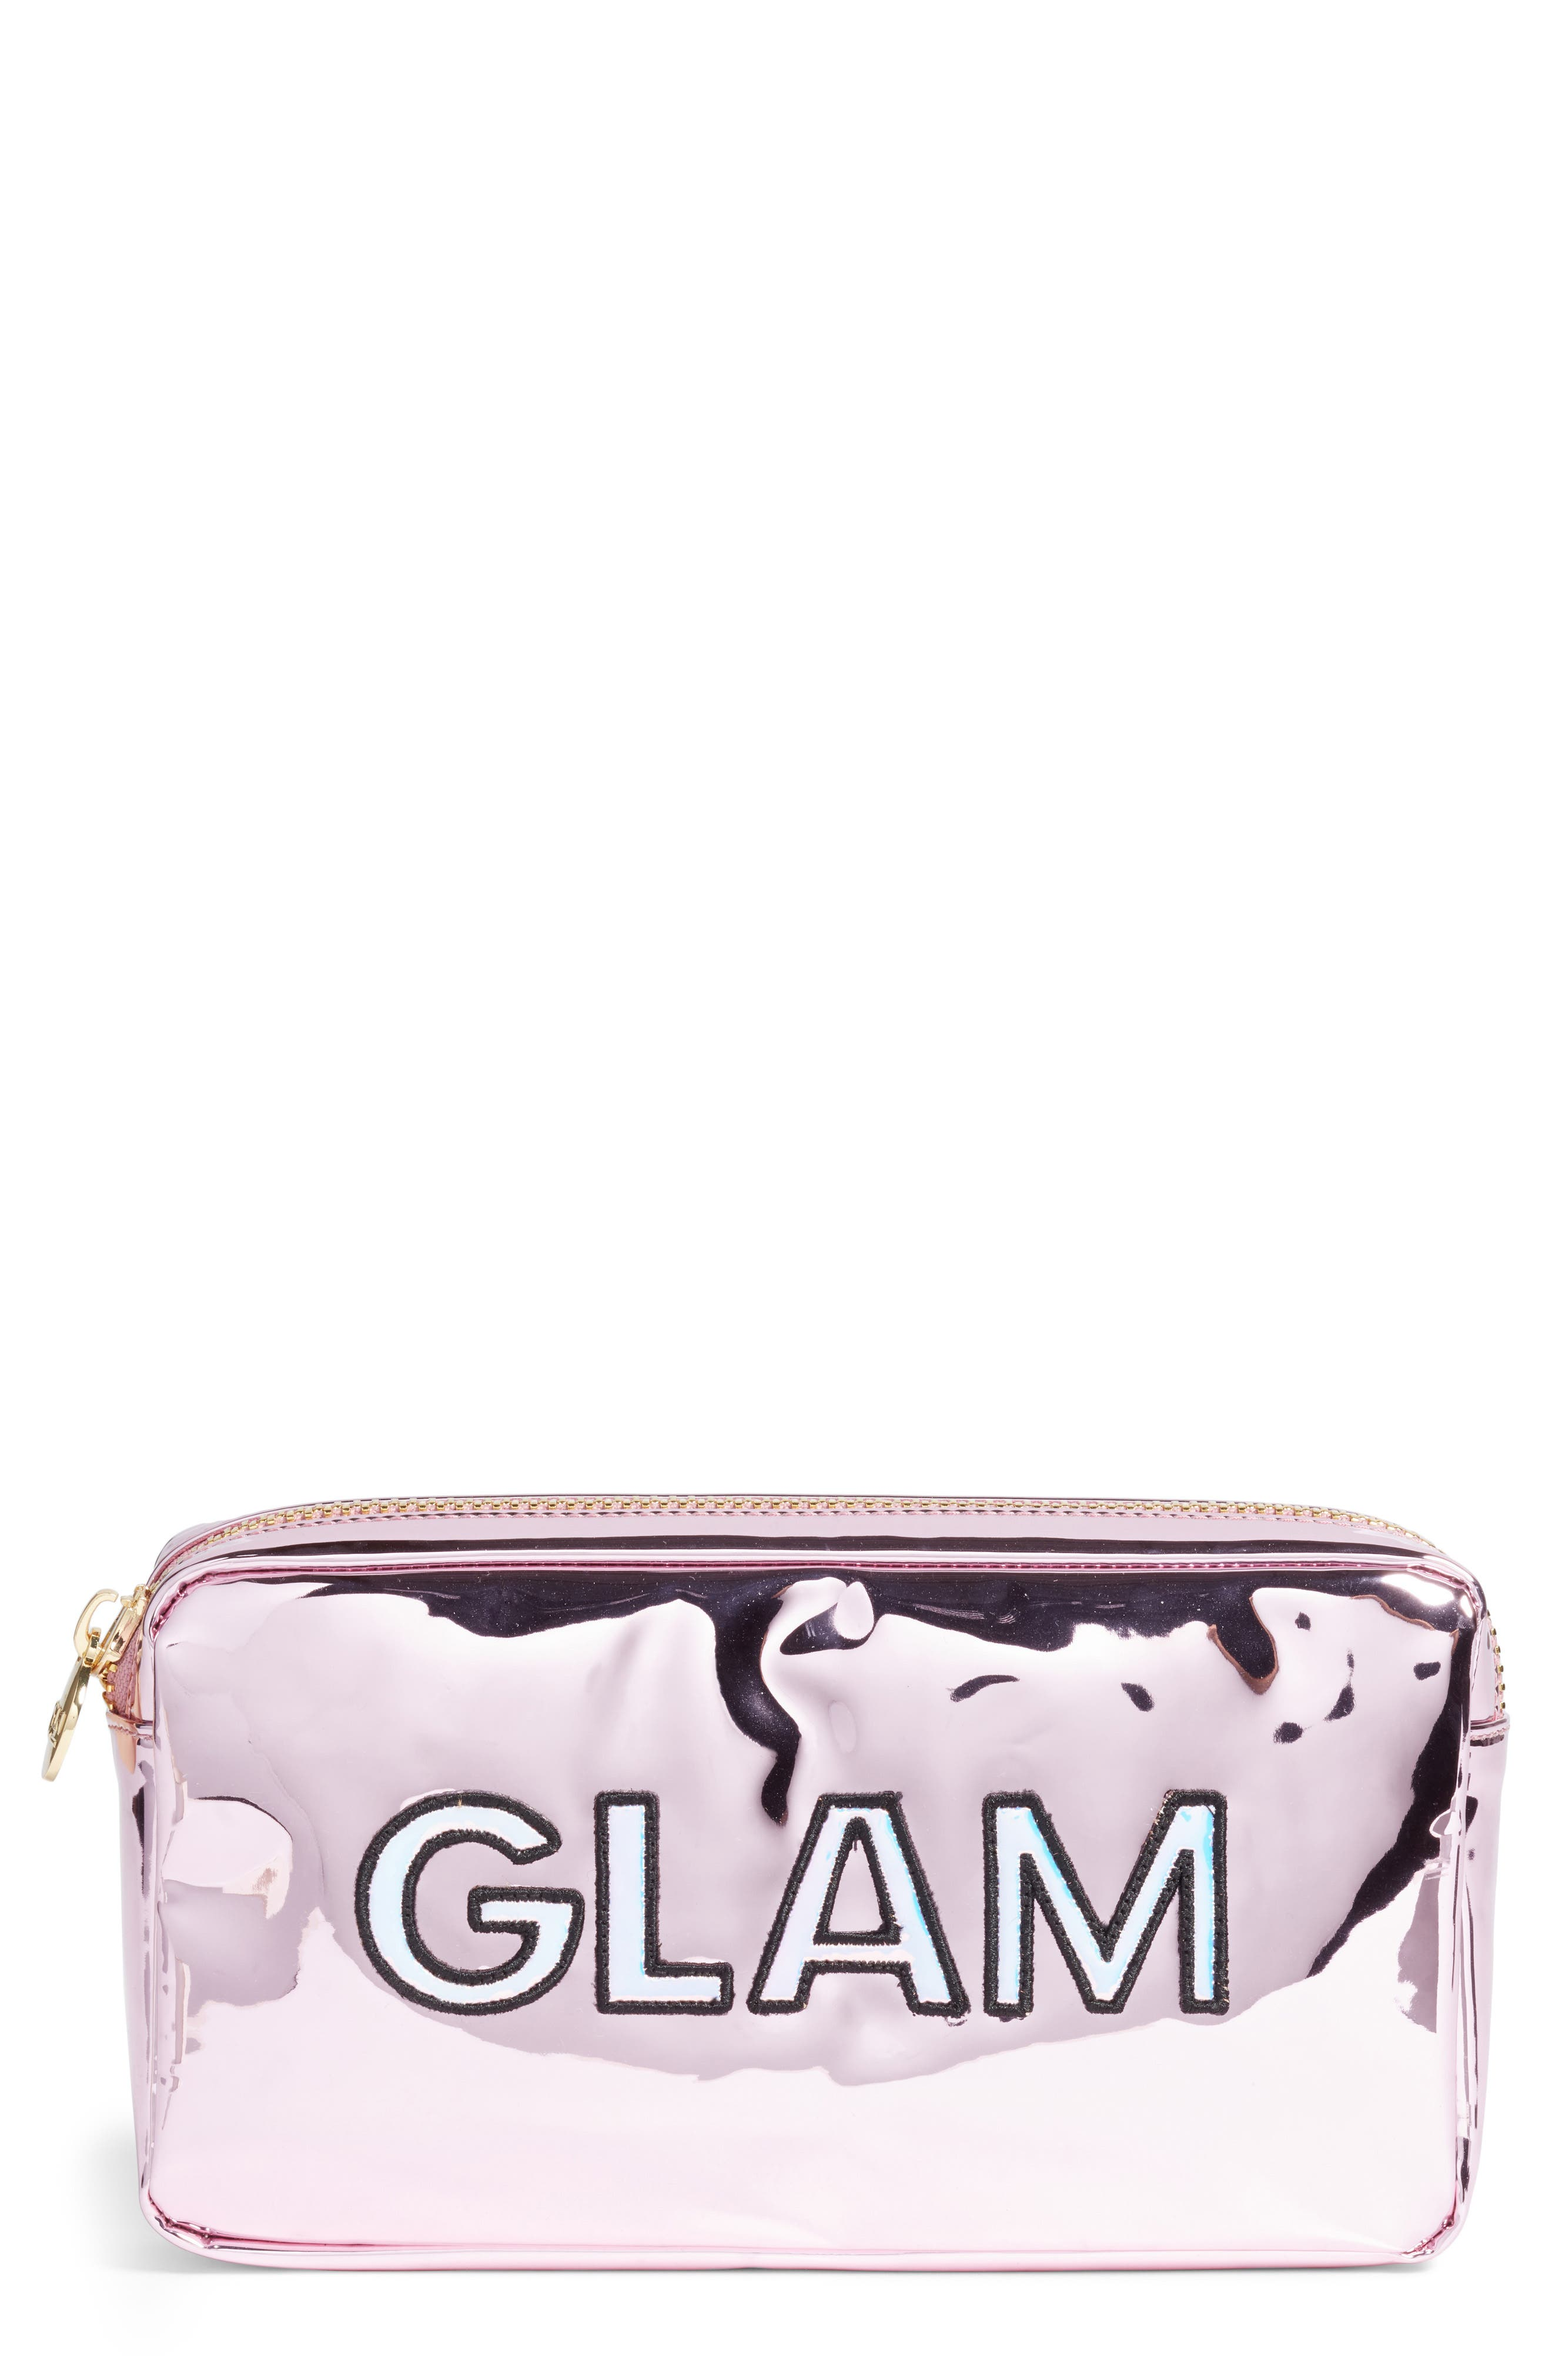 STONEY CLOVER LANE Small Patent Pouch in Pink